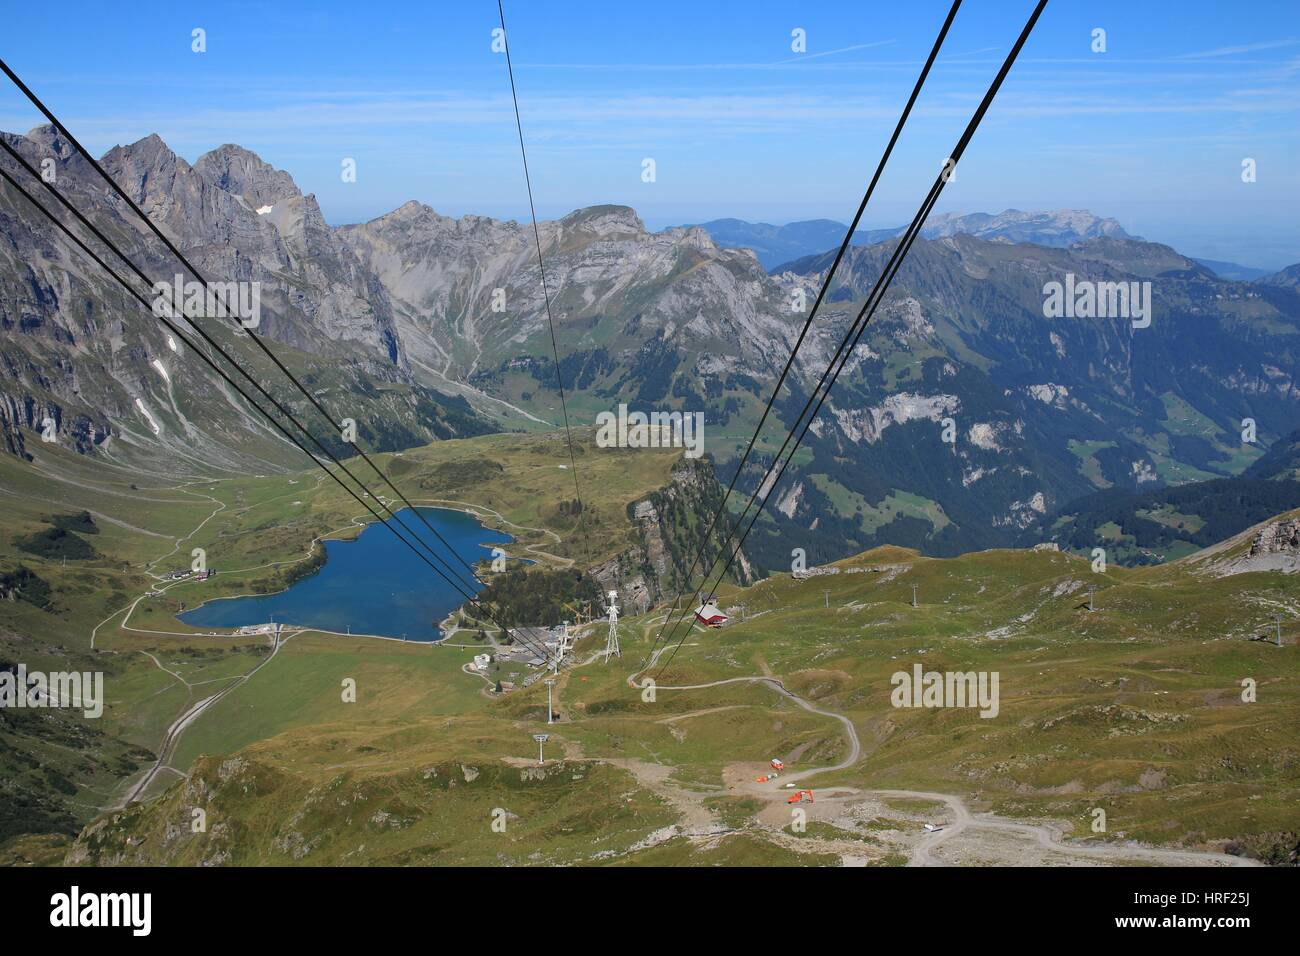 Lake Trubsee, view from the summit station of the Titlis cable car. Popular travel destination in the Swiss Alps. Stock Photo